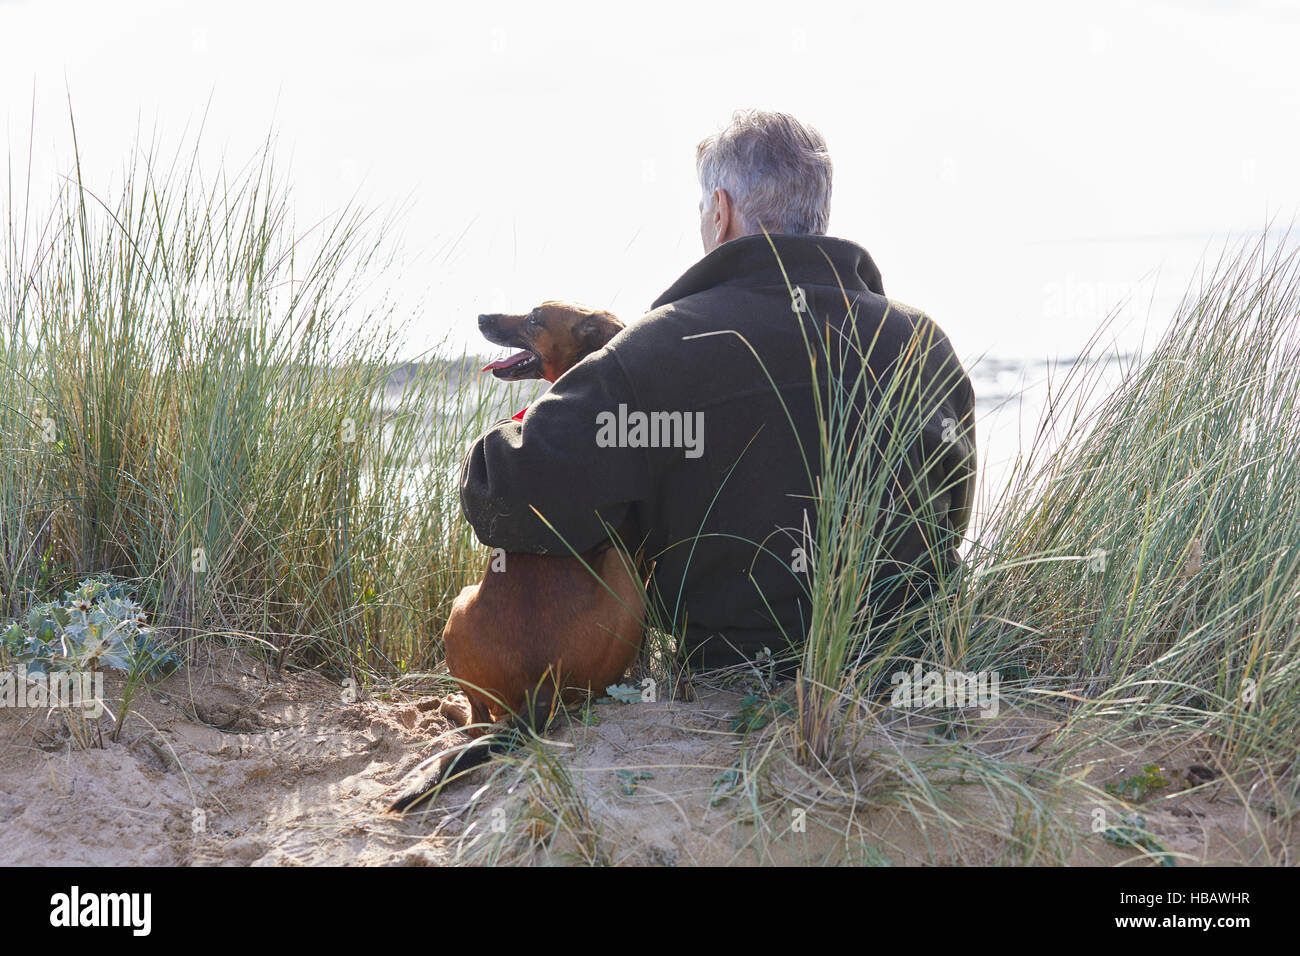 Rear view of man and pet dog sitting on sand dunes, Constantine Bay, Cornwall, UK - Stock Image